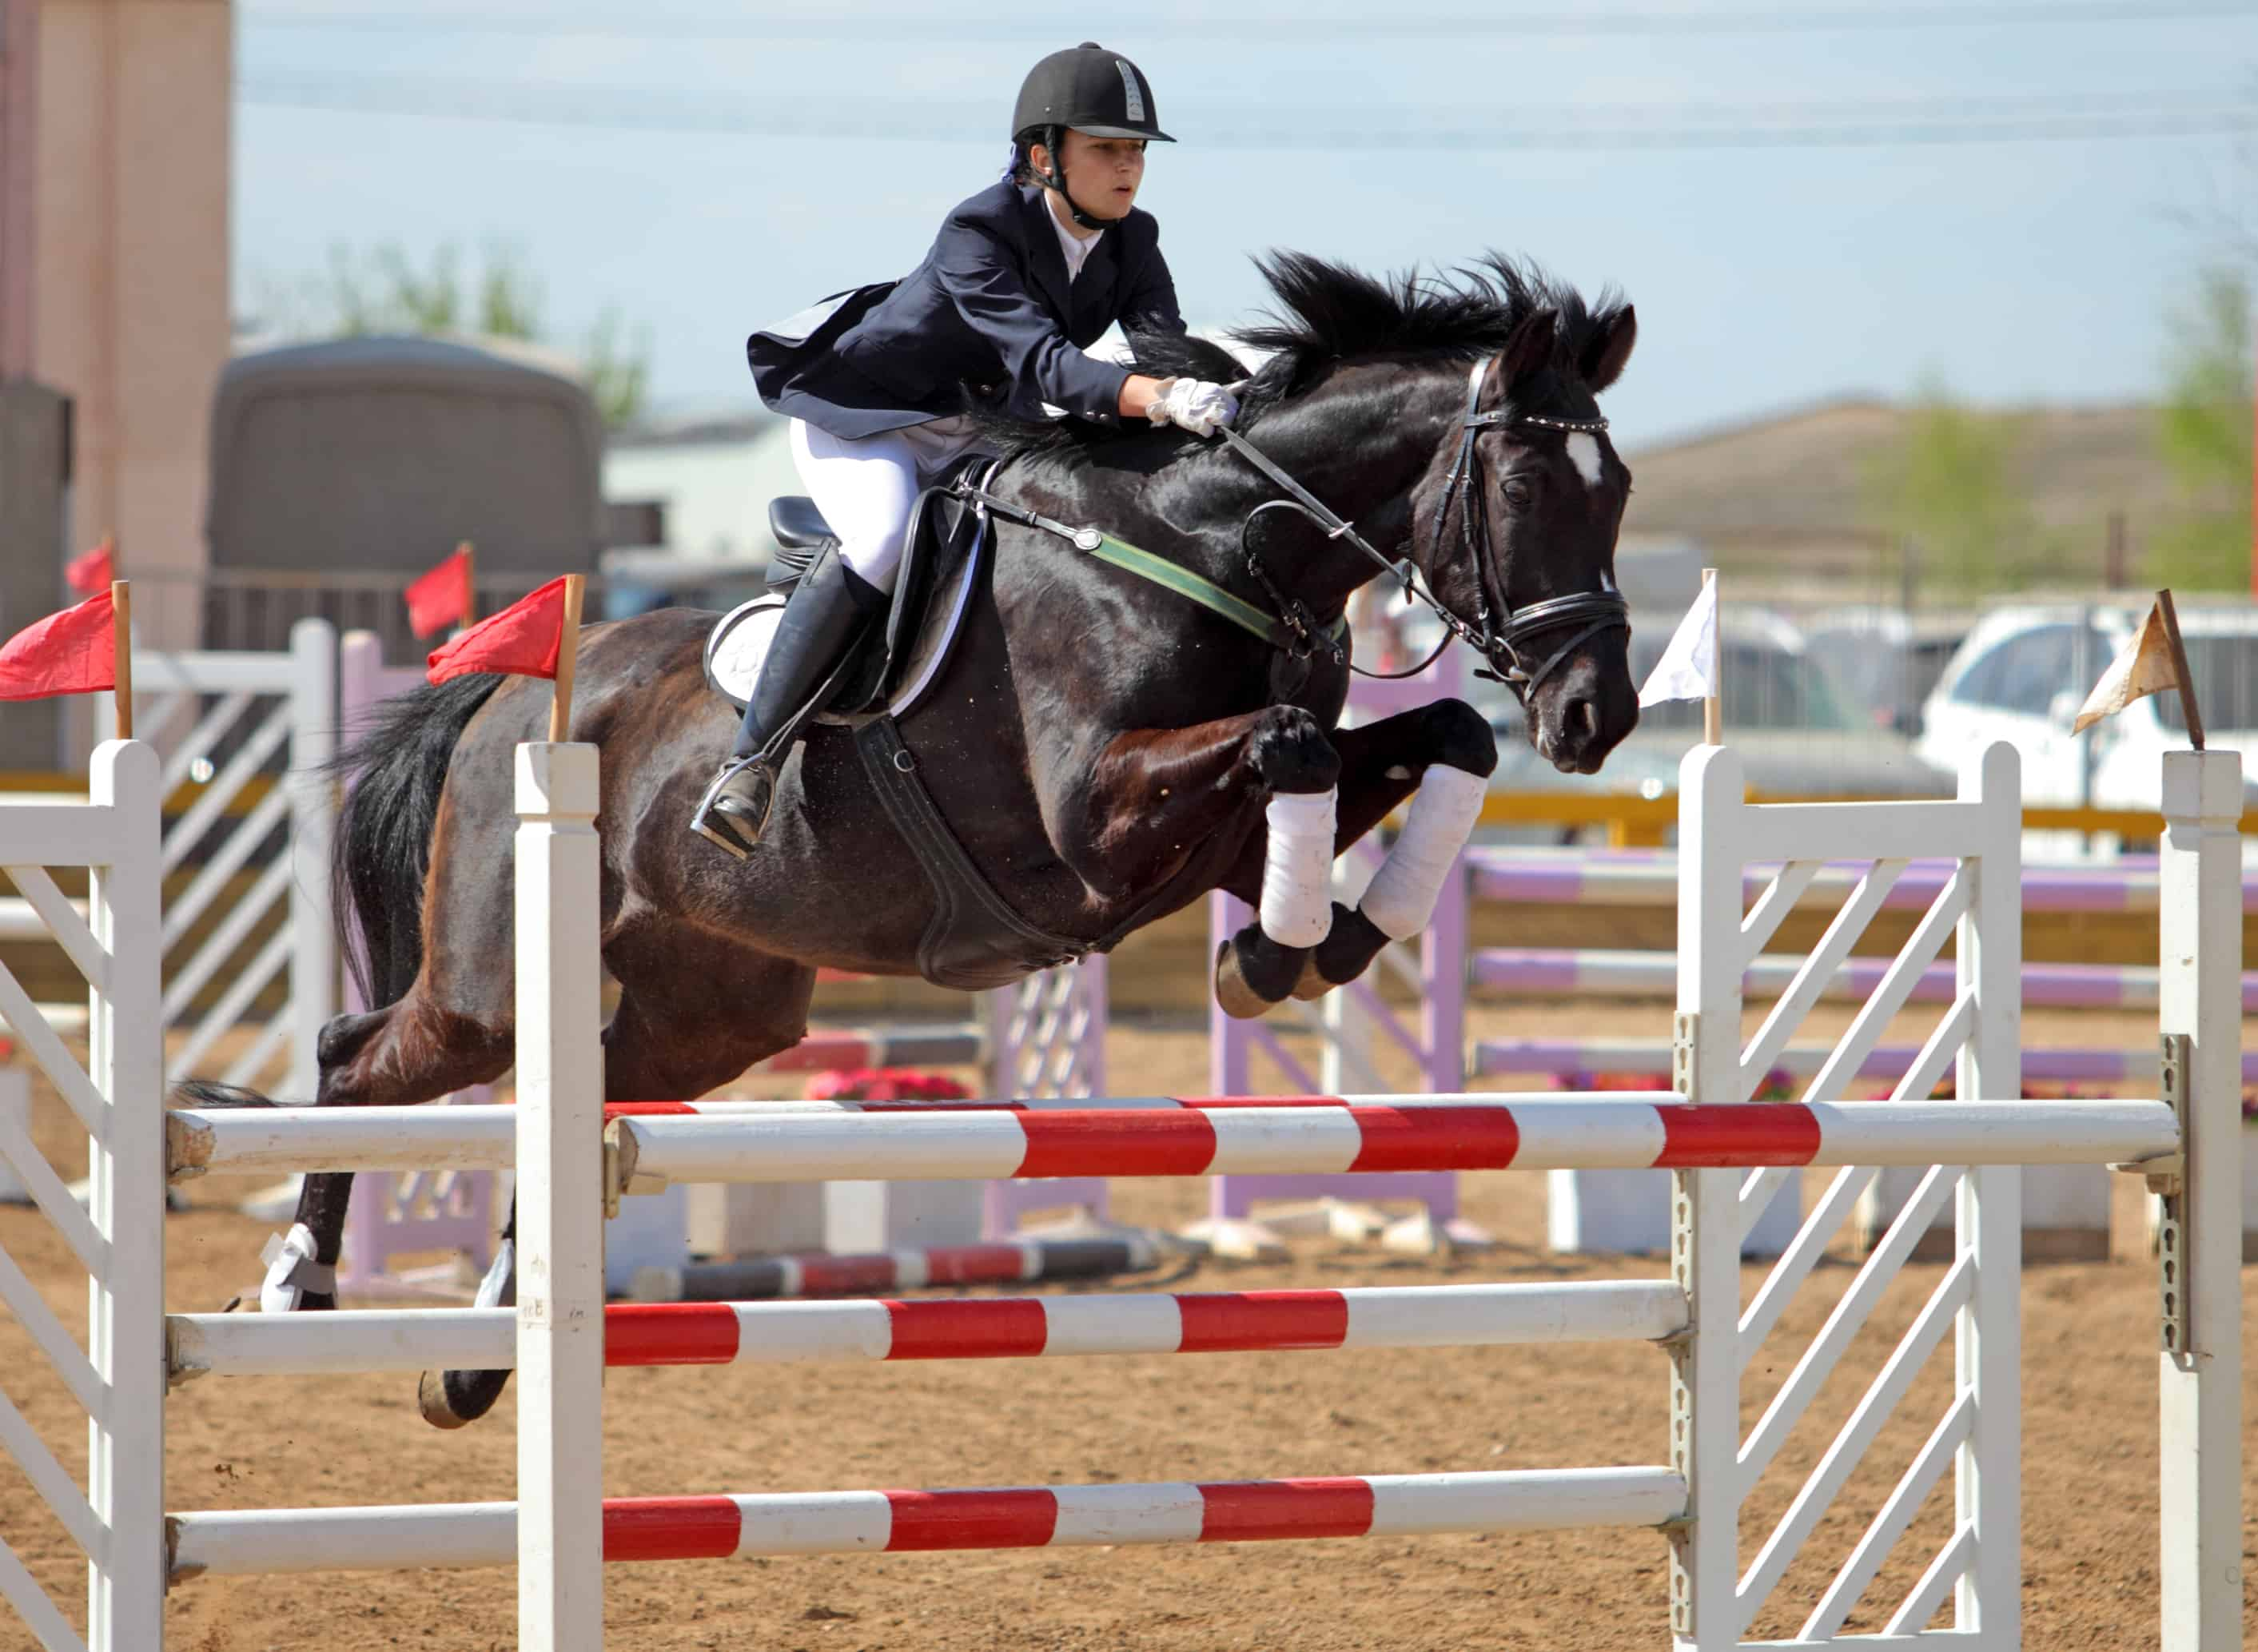 Scientists Monitor Jumpers Heart Rates During Competition The Horse